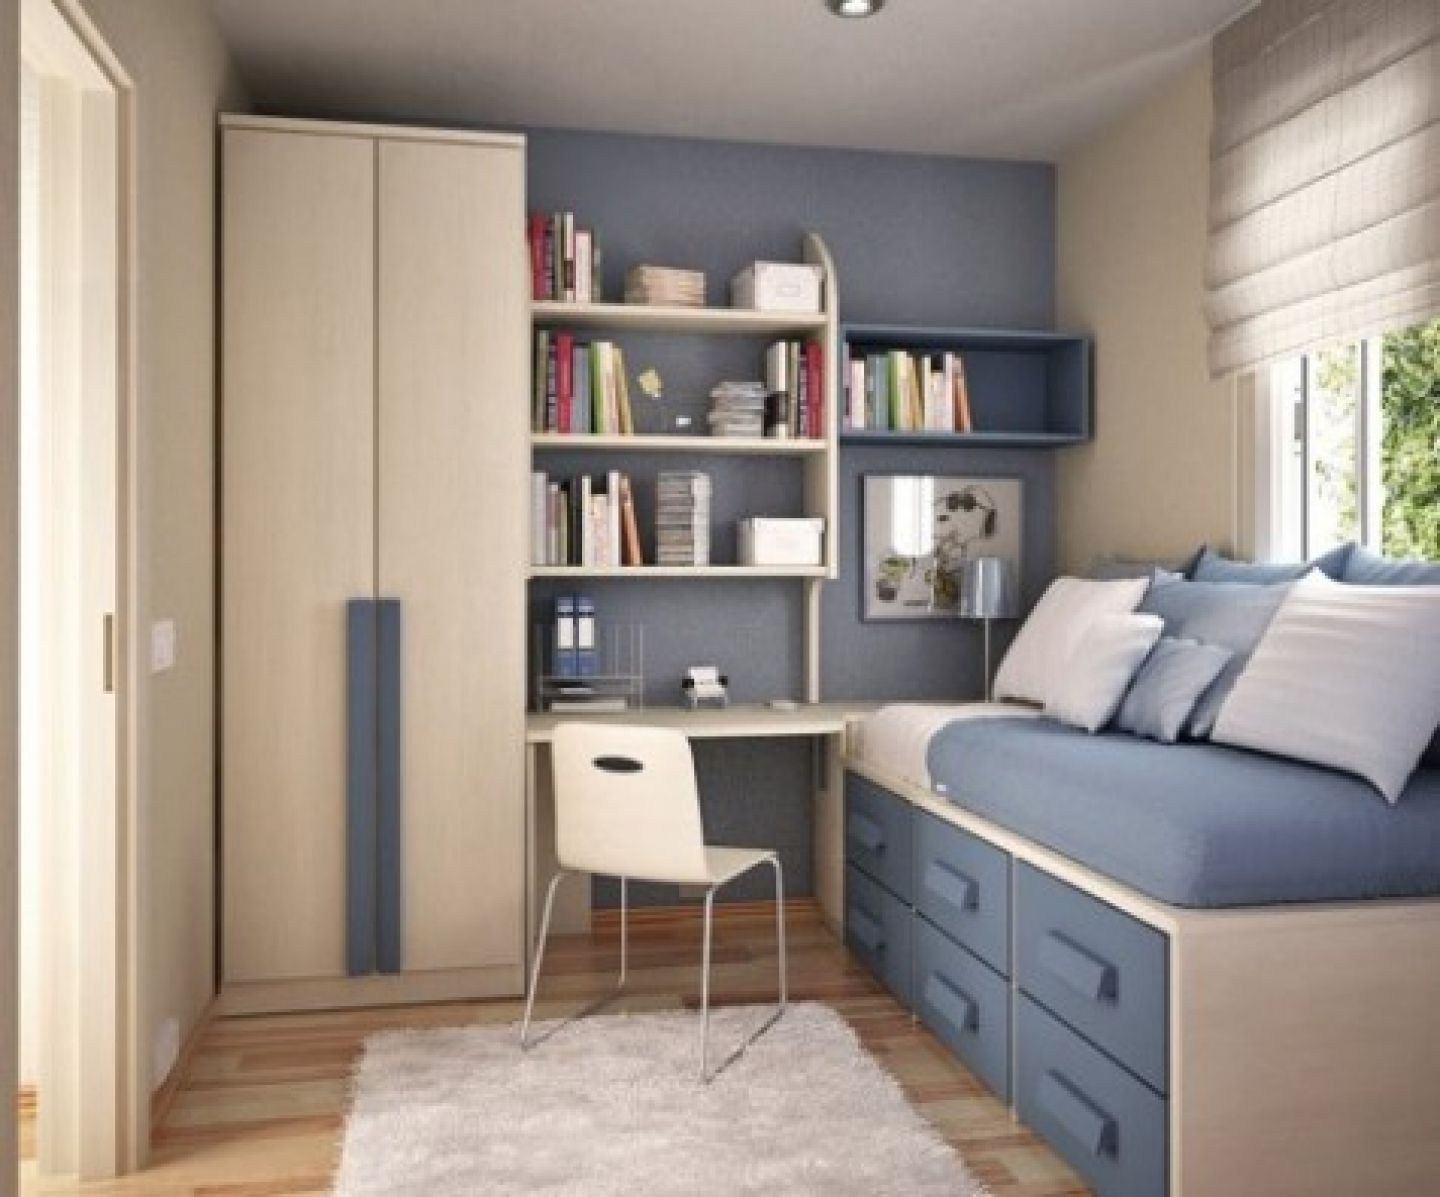 Prime Bedroom Cabinet Design For Small Space Beds Room Small Download Free Architecture Designs Griteanizatbritishbridgeorg